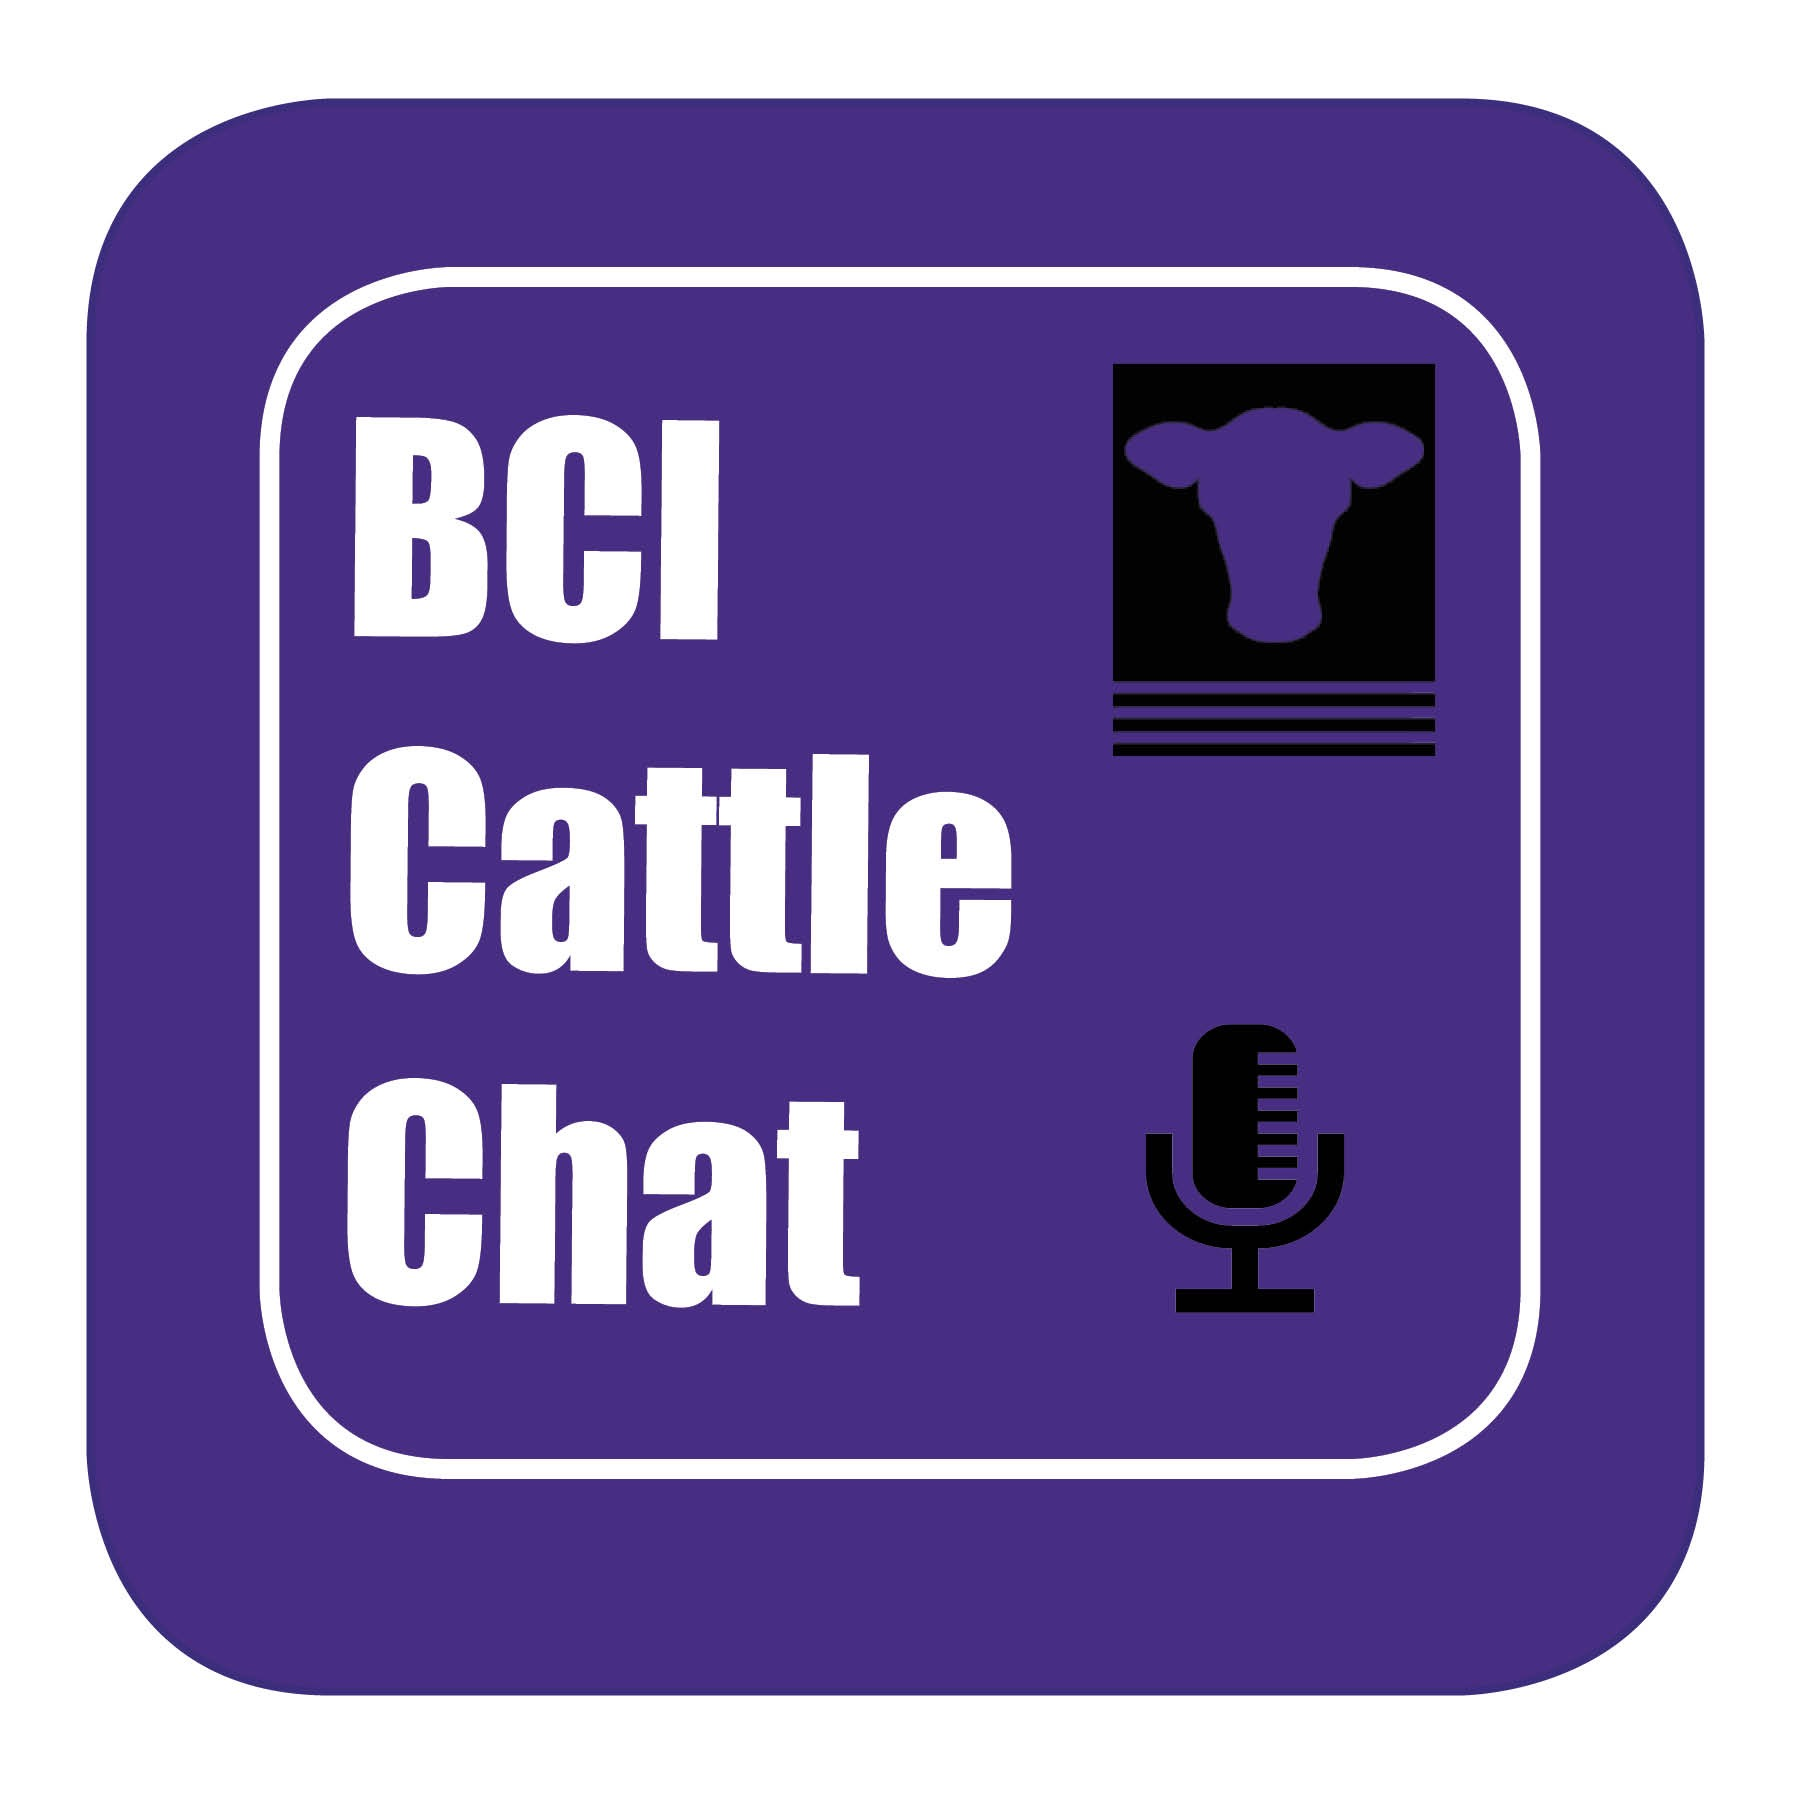 BCI Cattle Chat - Episode 21